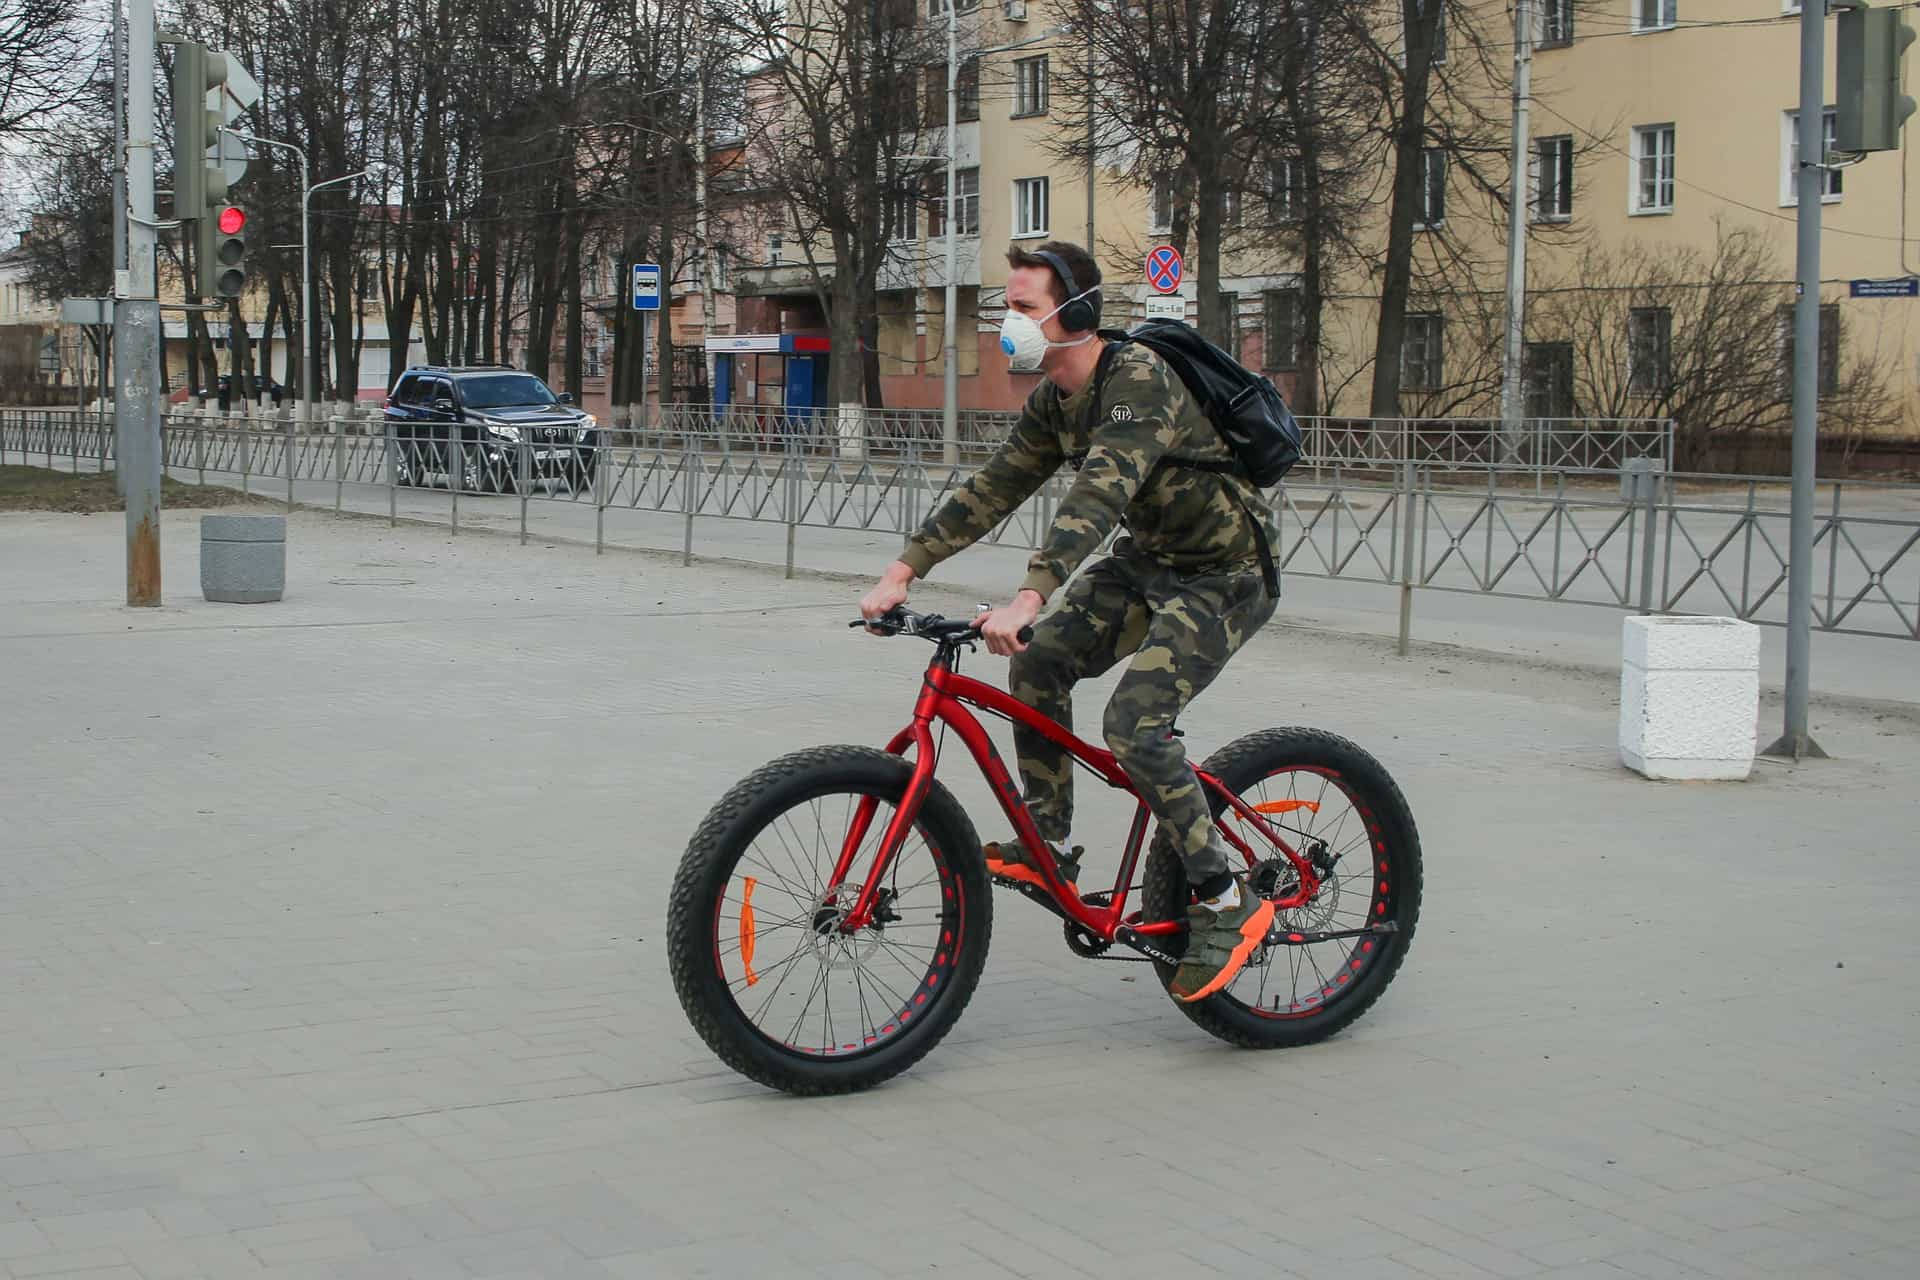 Frontliner cycling in the city